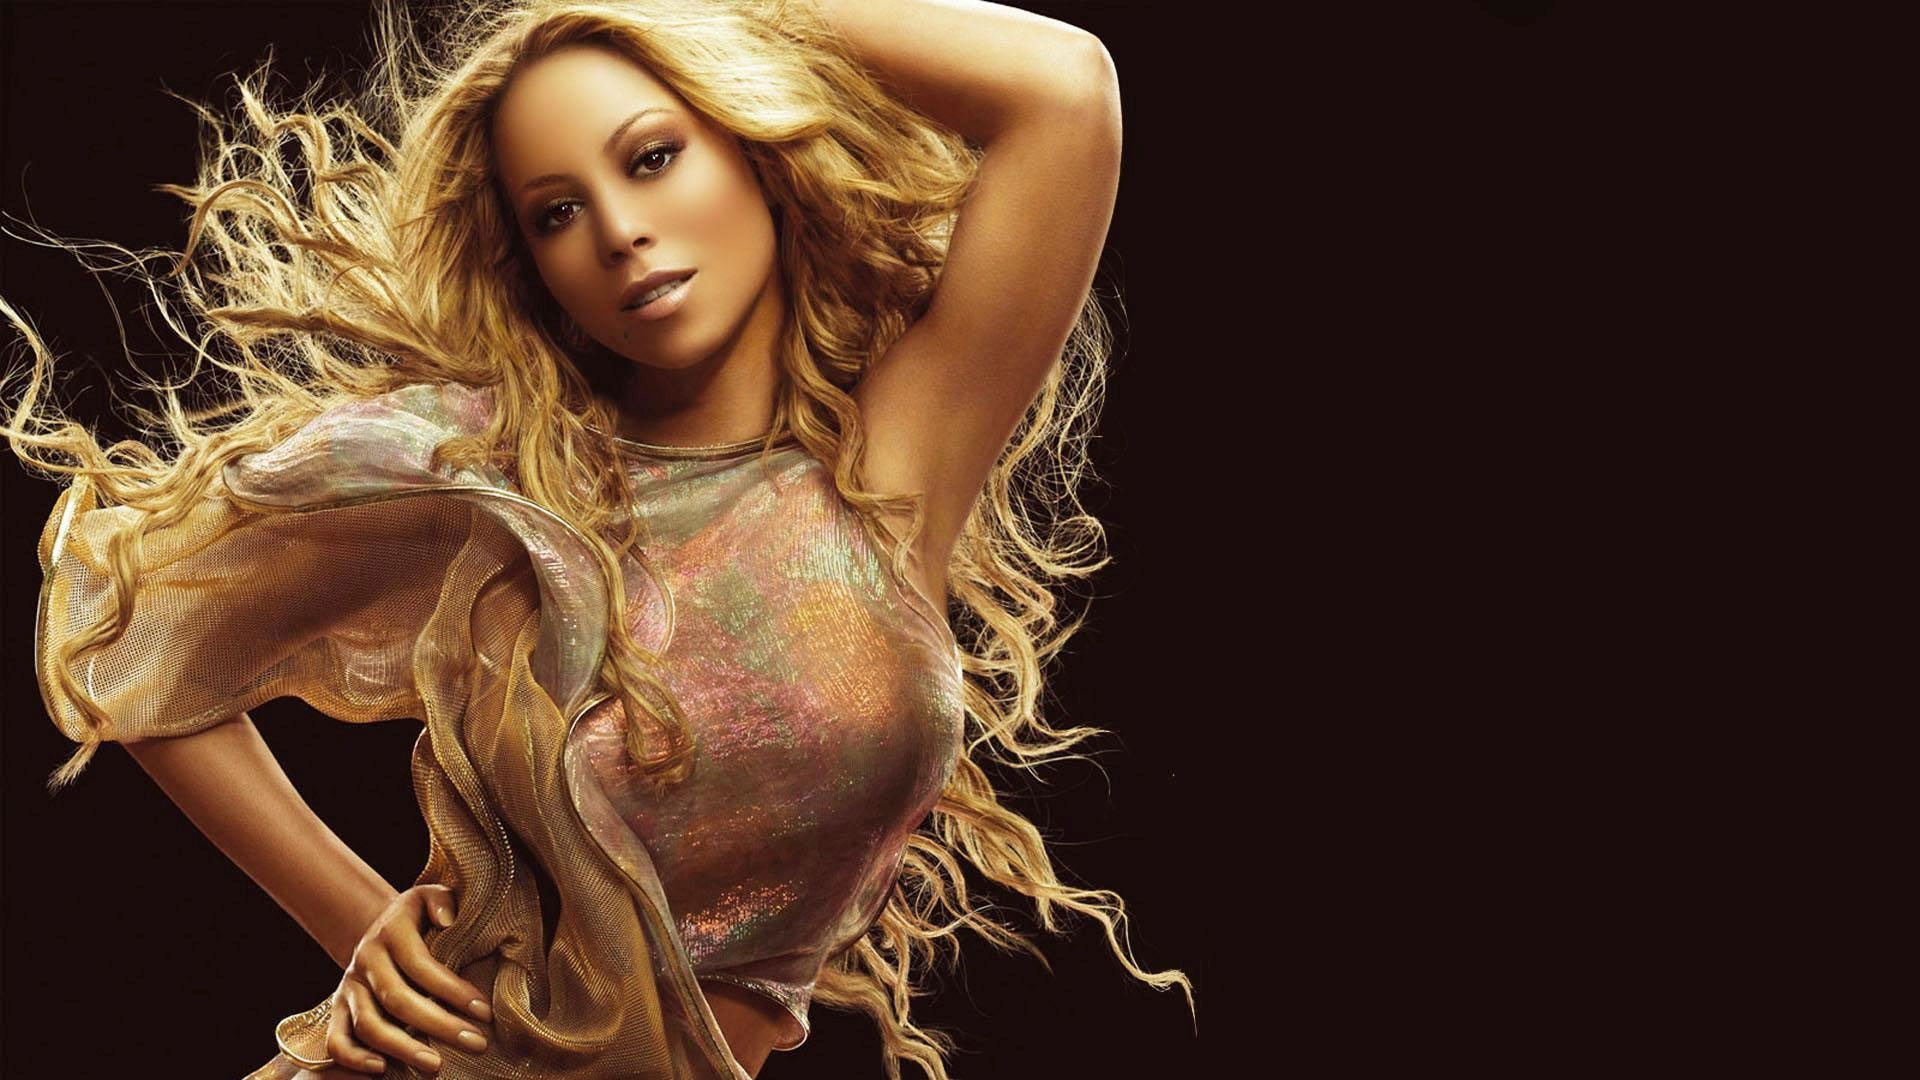 mariah carey desktop wallpaper 53385